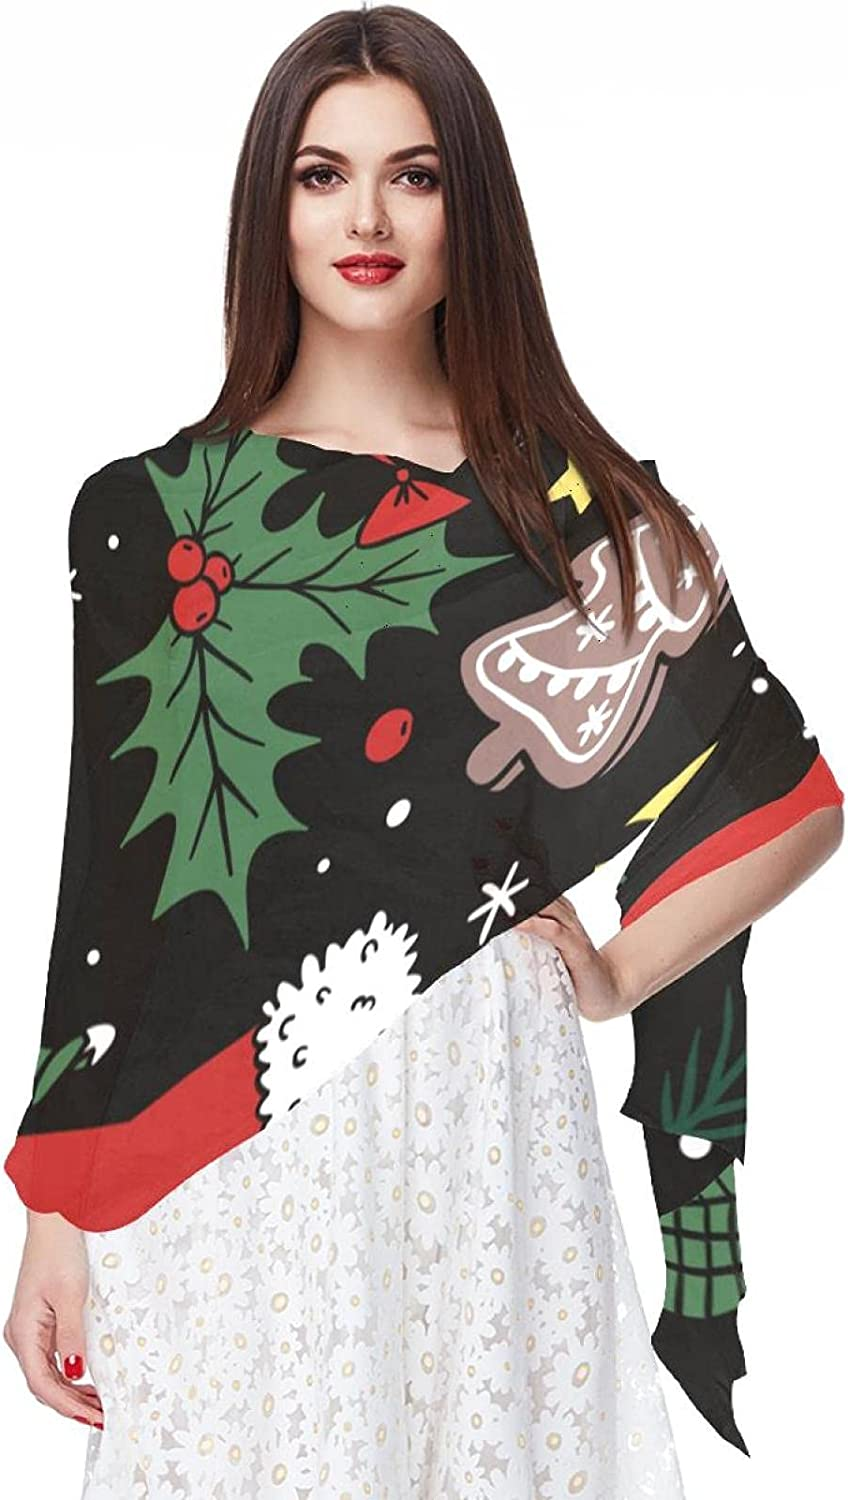 Scarfs for Women Lightweight Fashion Scarves Print Floral Pattern Scarf Shawl Wraps, Christmas Elements